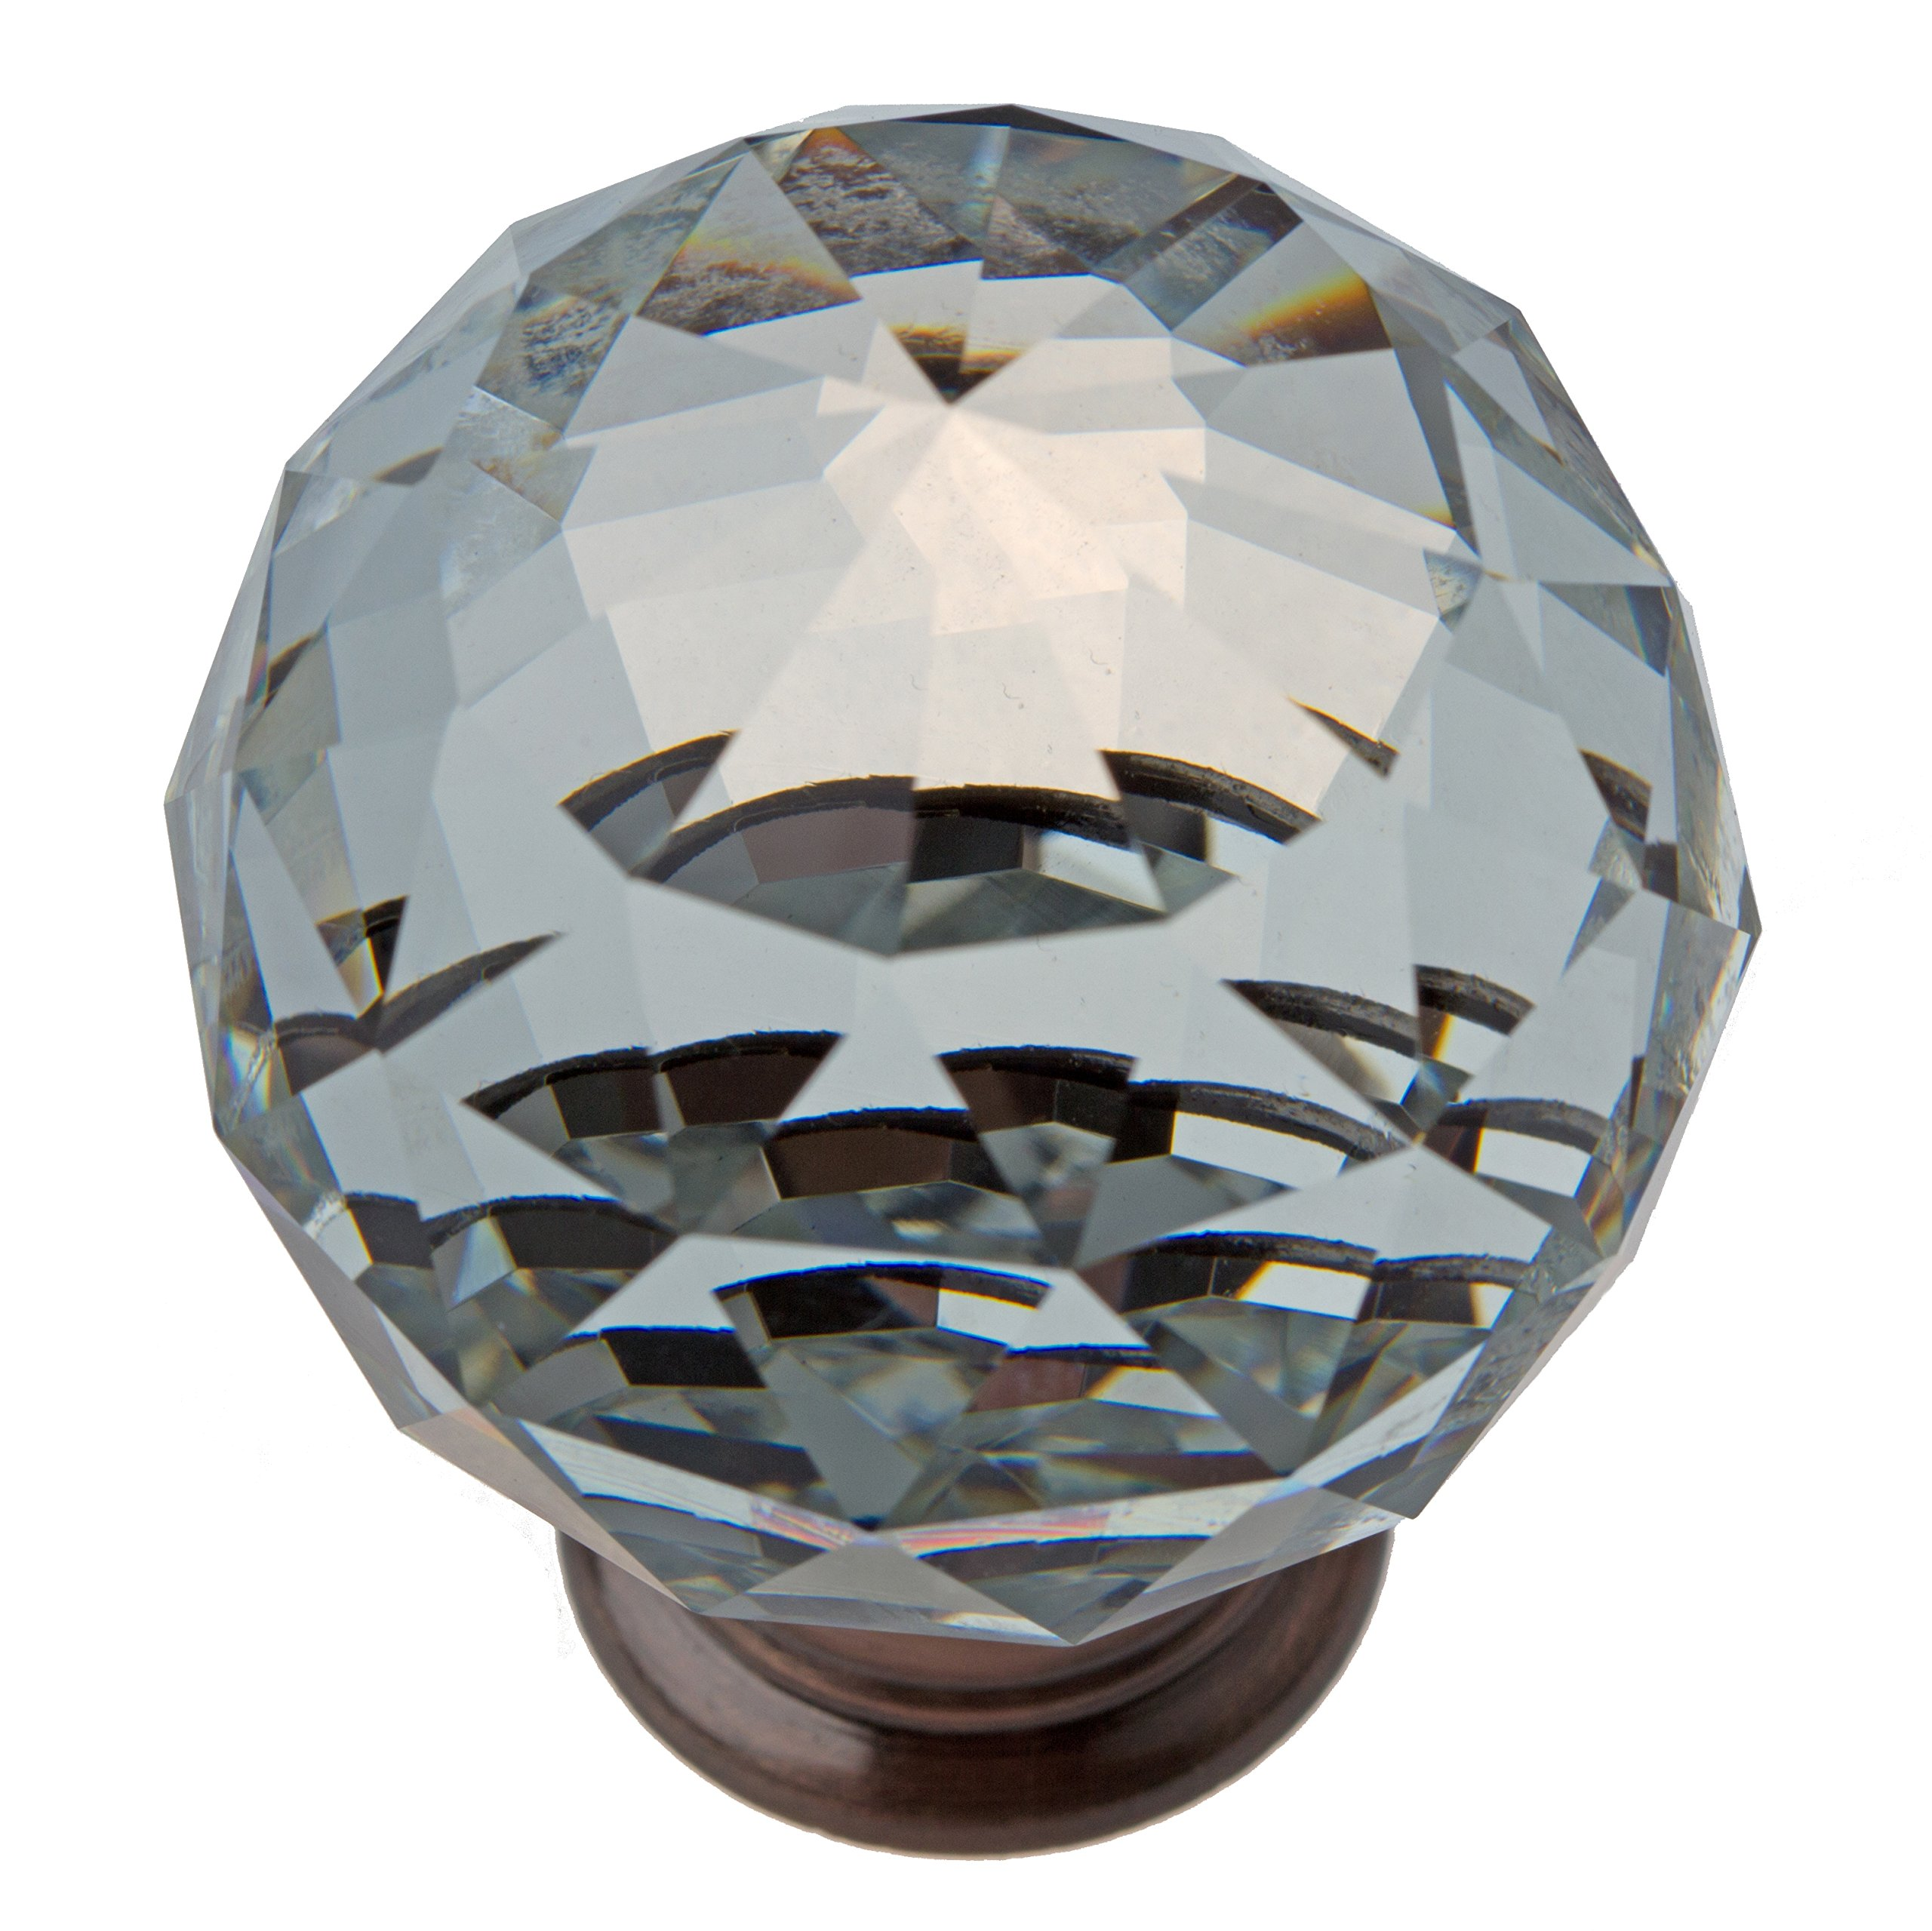 GlideRite Hardware 9003-ORB-40-10 Clear large K9 Crystal with Oil Rubbed Bronze Base Cabinet Knobs 10 Pack